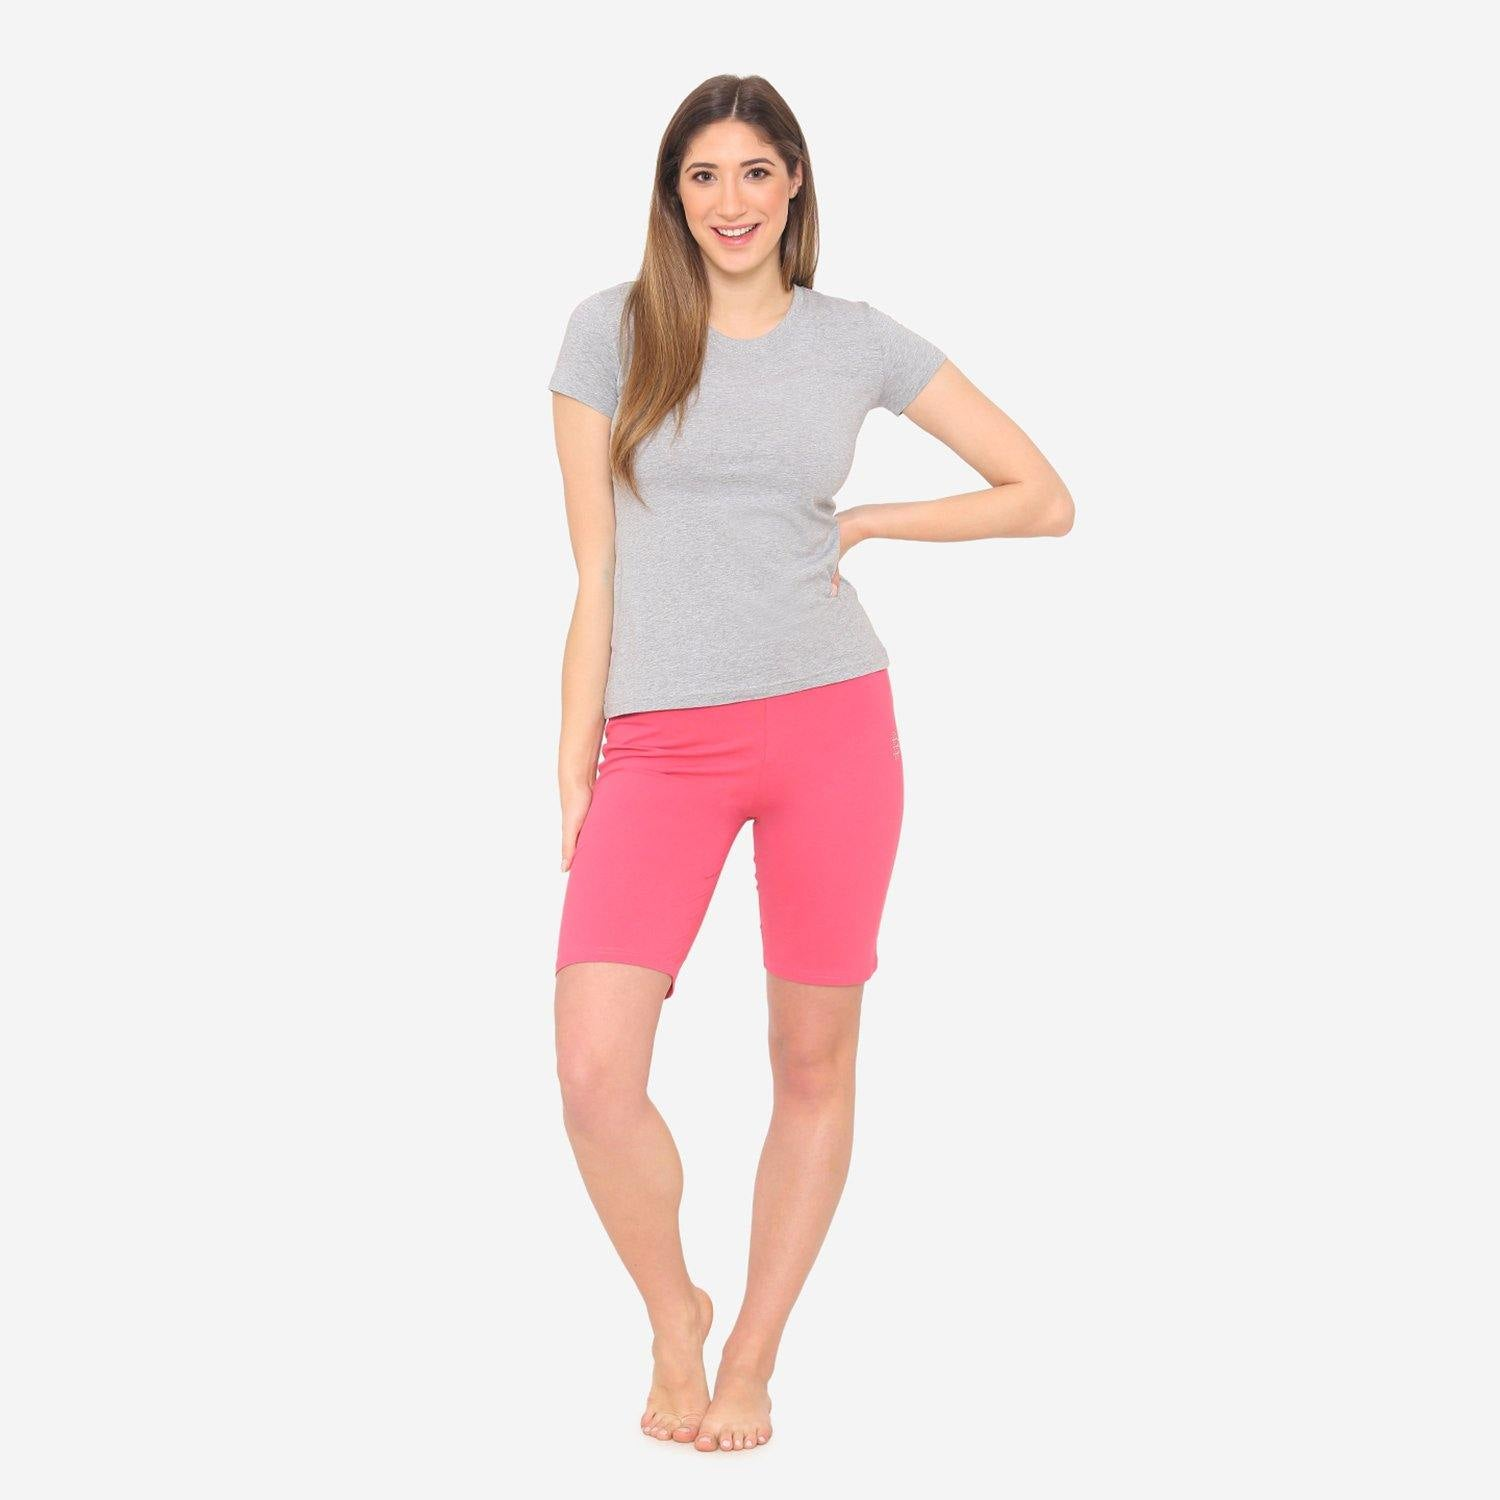 Women's Casual  Plain Shorts for Summer - Pink